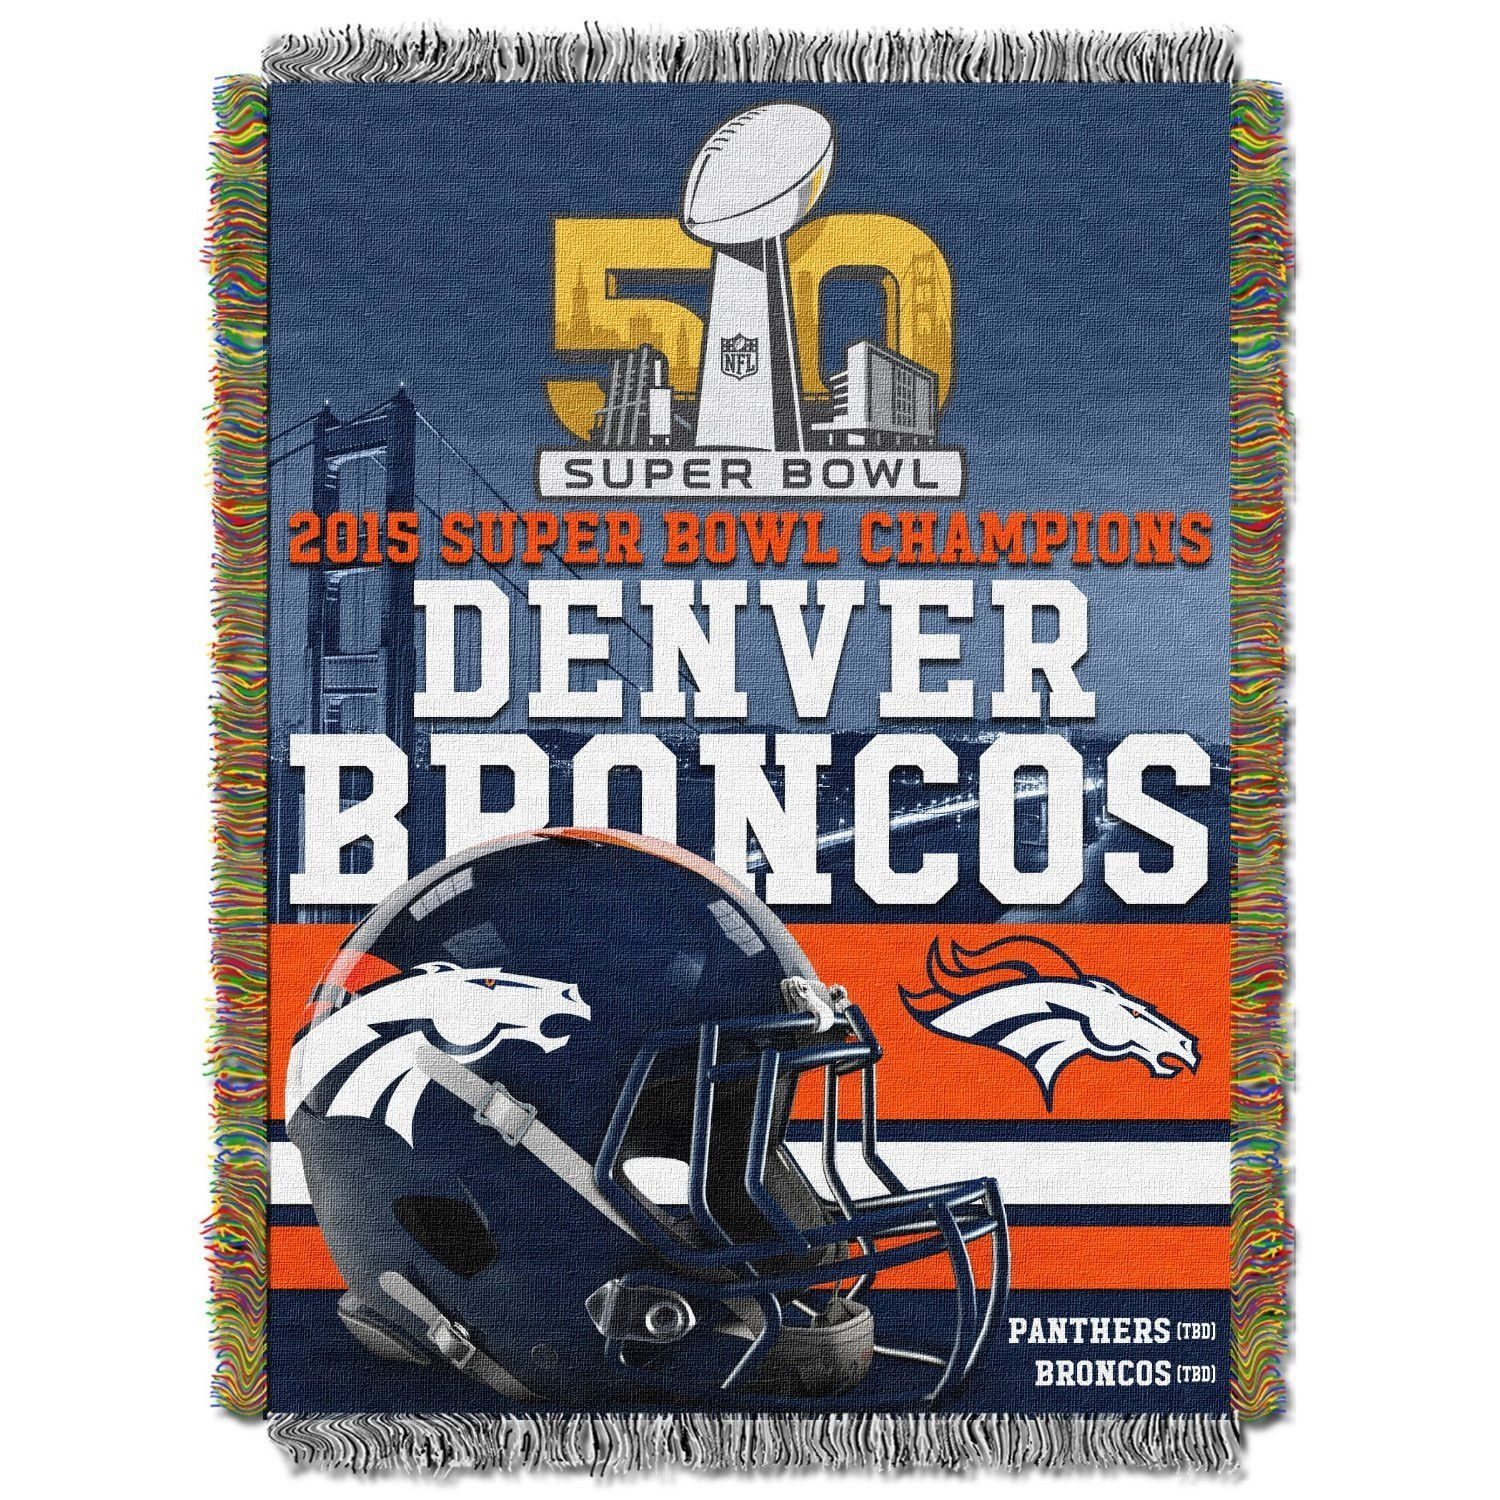 Denver Broncos NFL Super Bowl 50 Champions Woven Tapestry Throw (48x60)